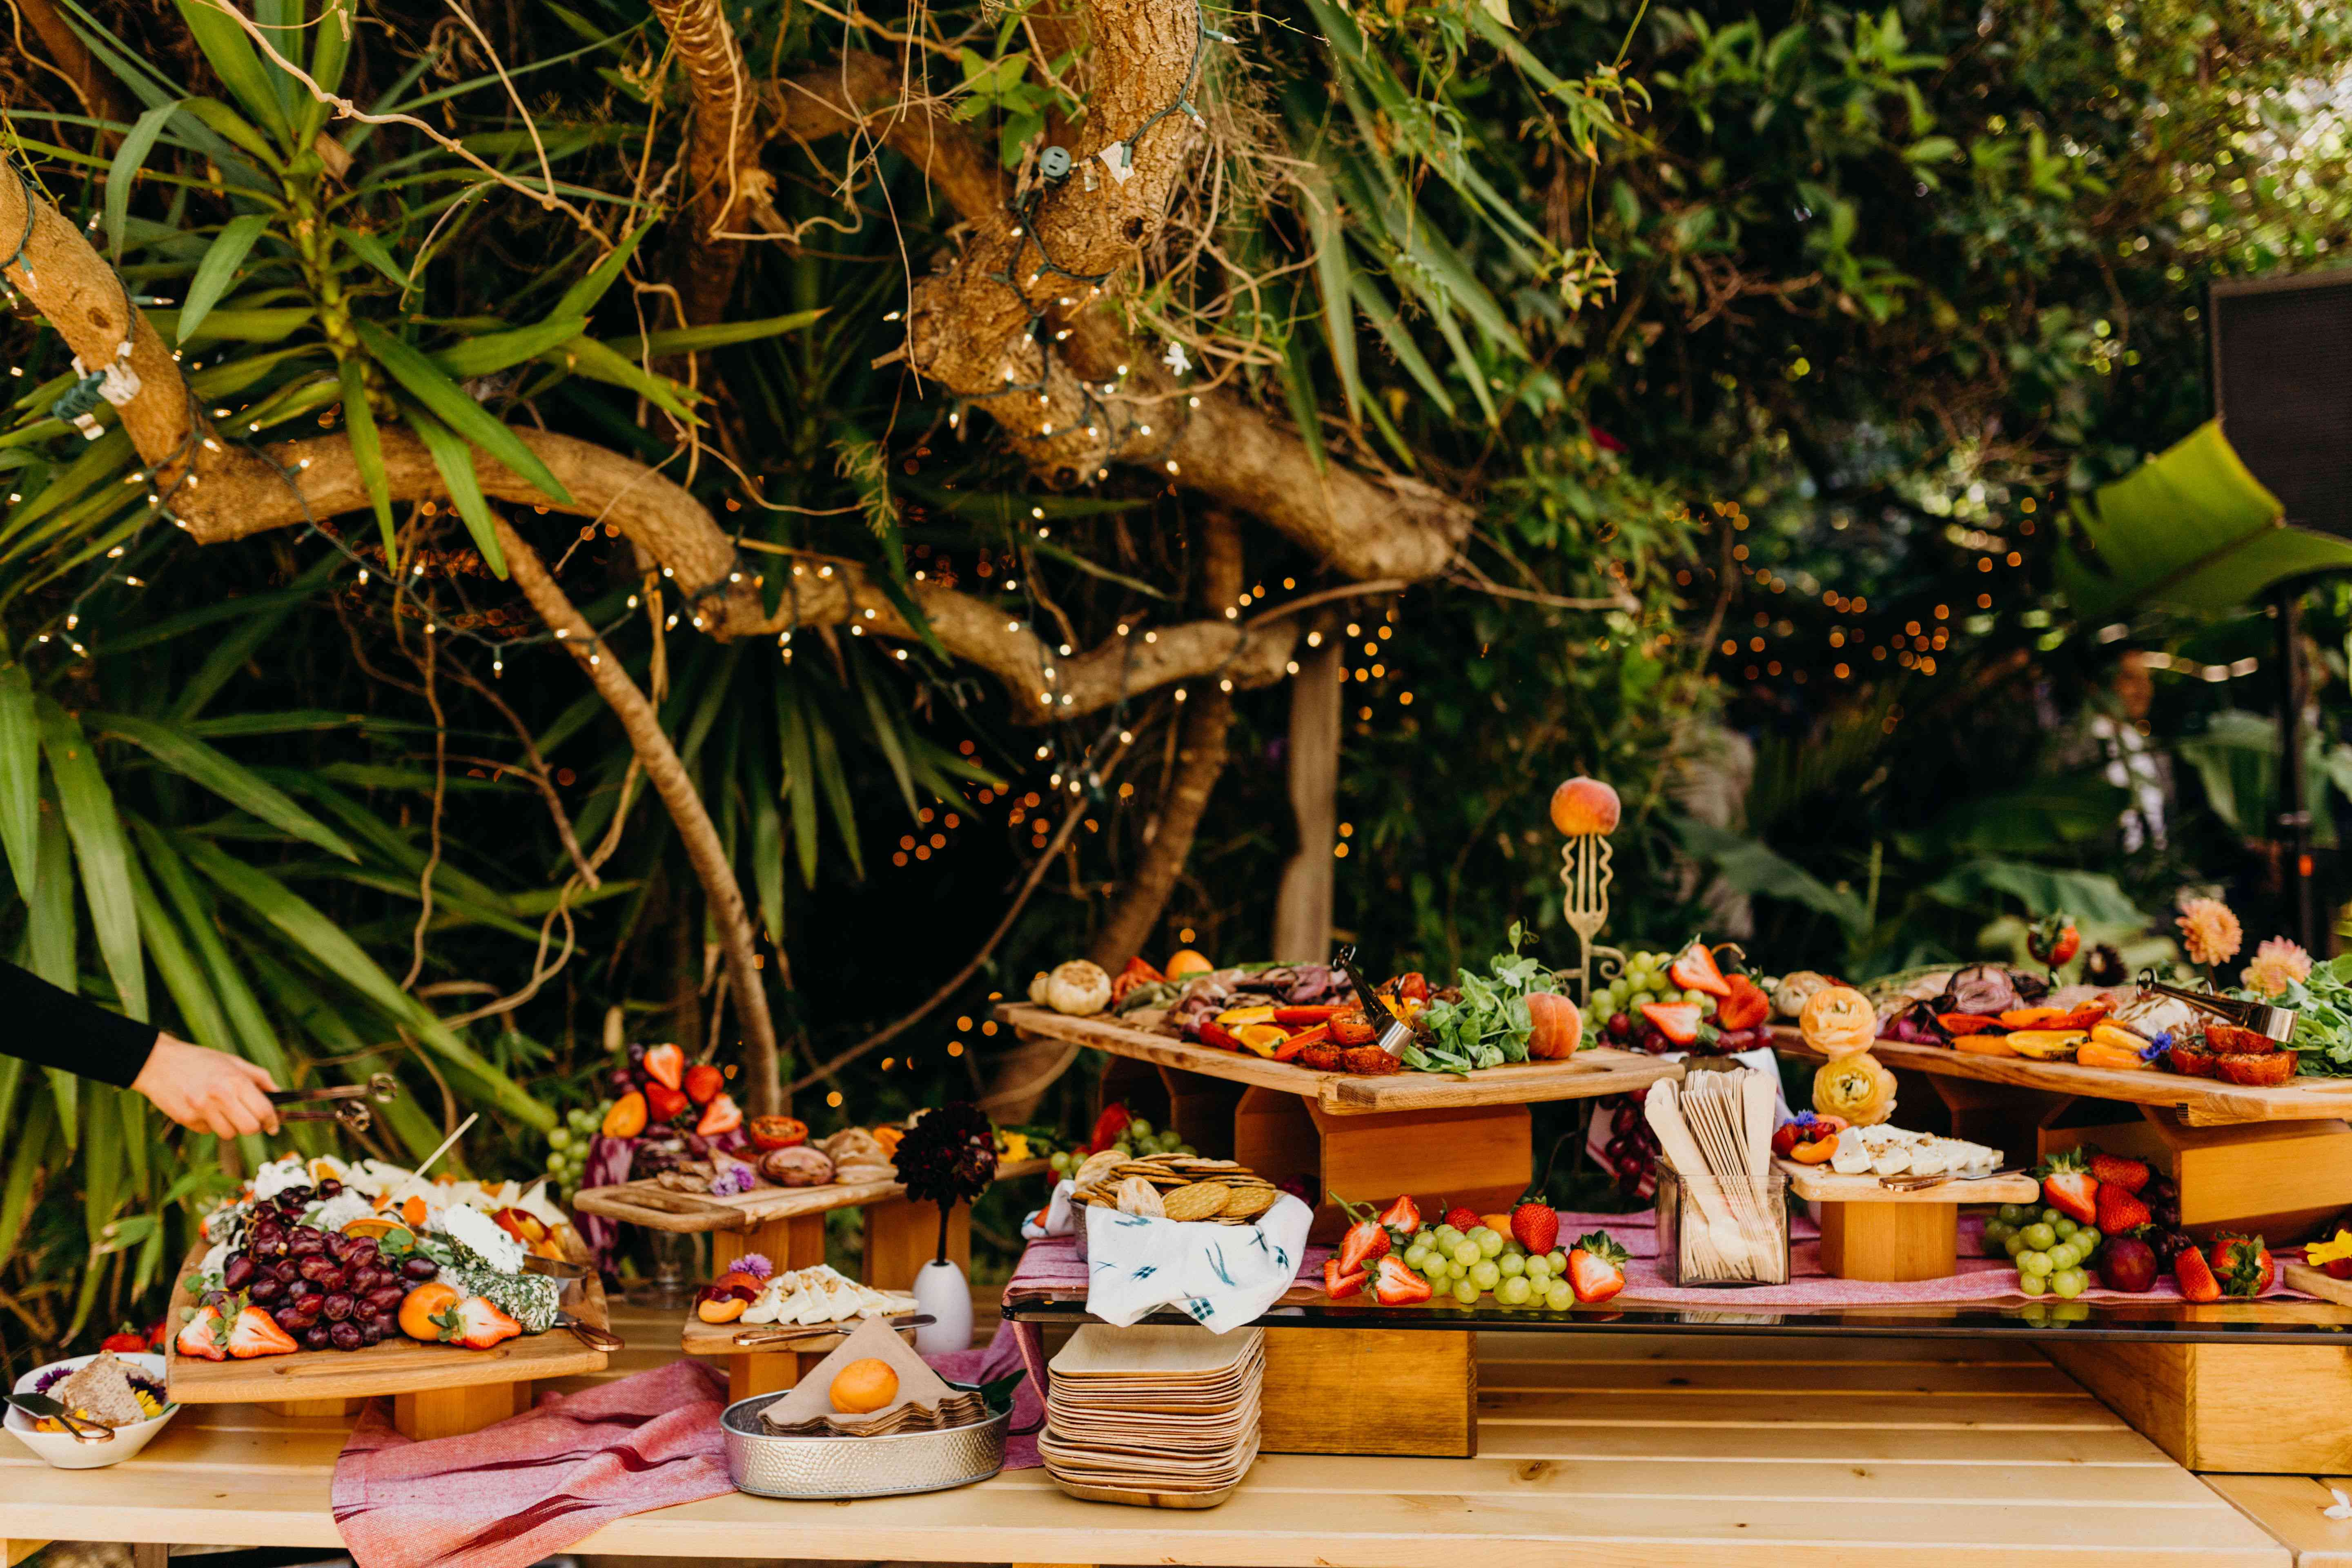 Grazing table with bright fruits